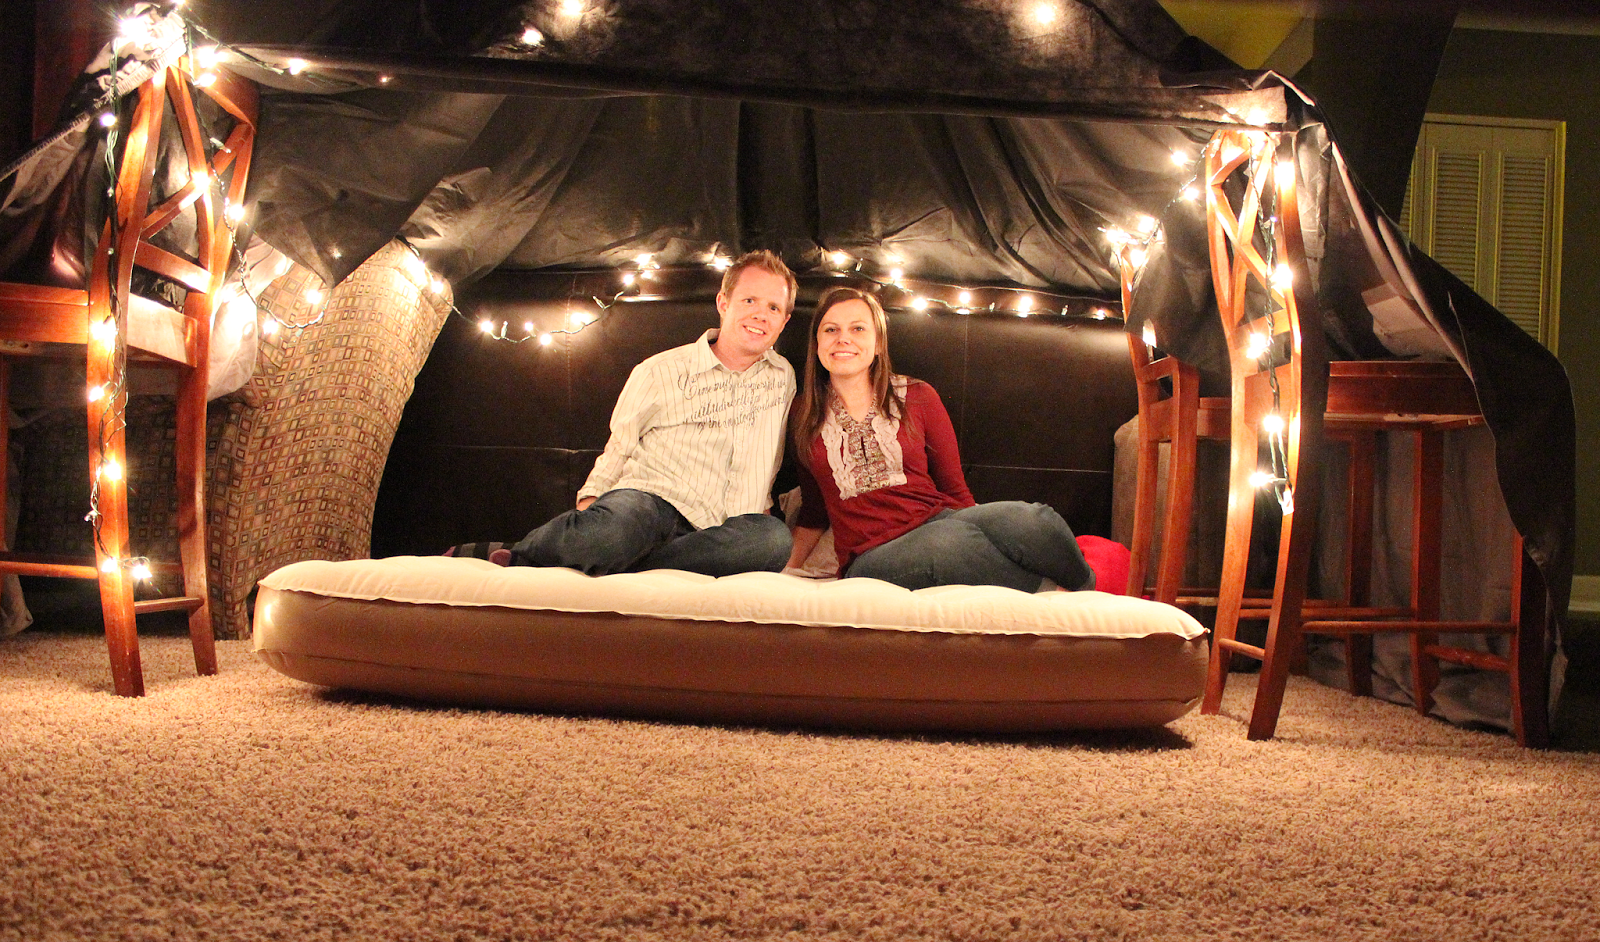 Friday We're In Love: Romantic Fort Date Night Surprise Romantic Night At Home